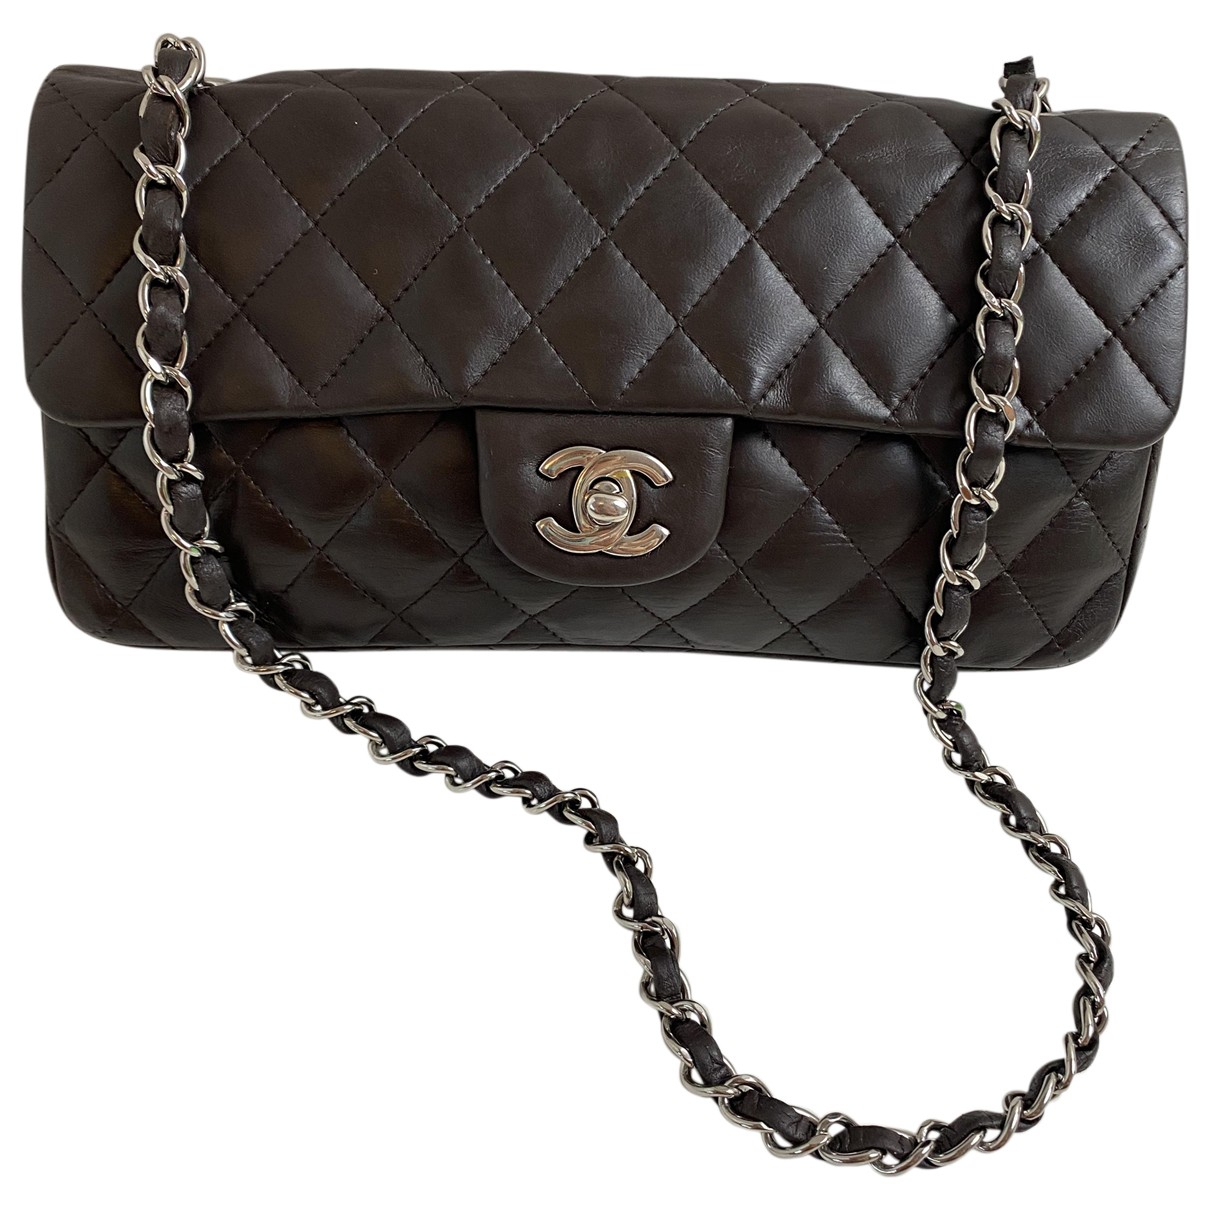 Chanel Timeless/Classique Brown Leather handbag for Women \N